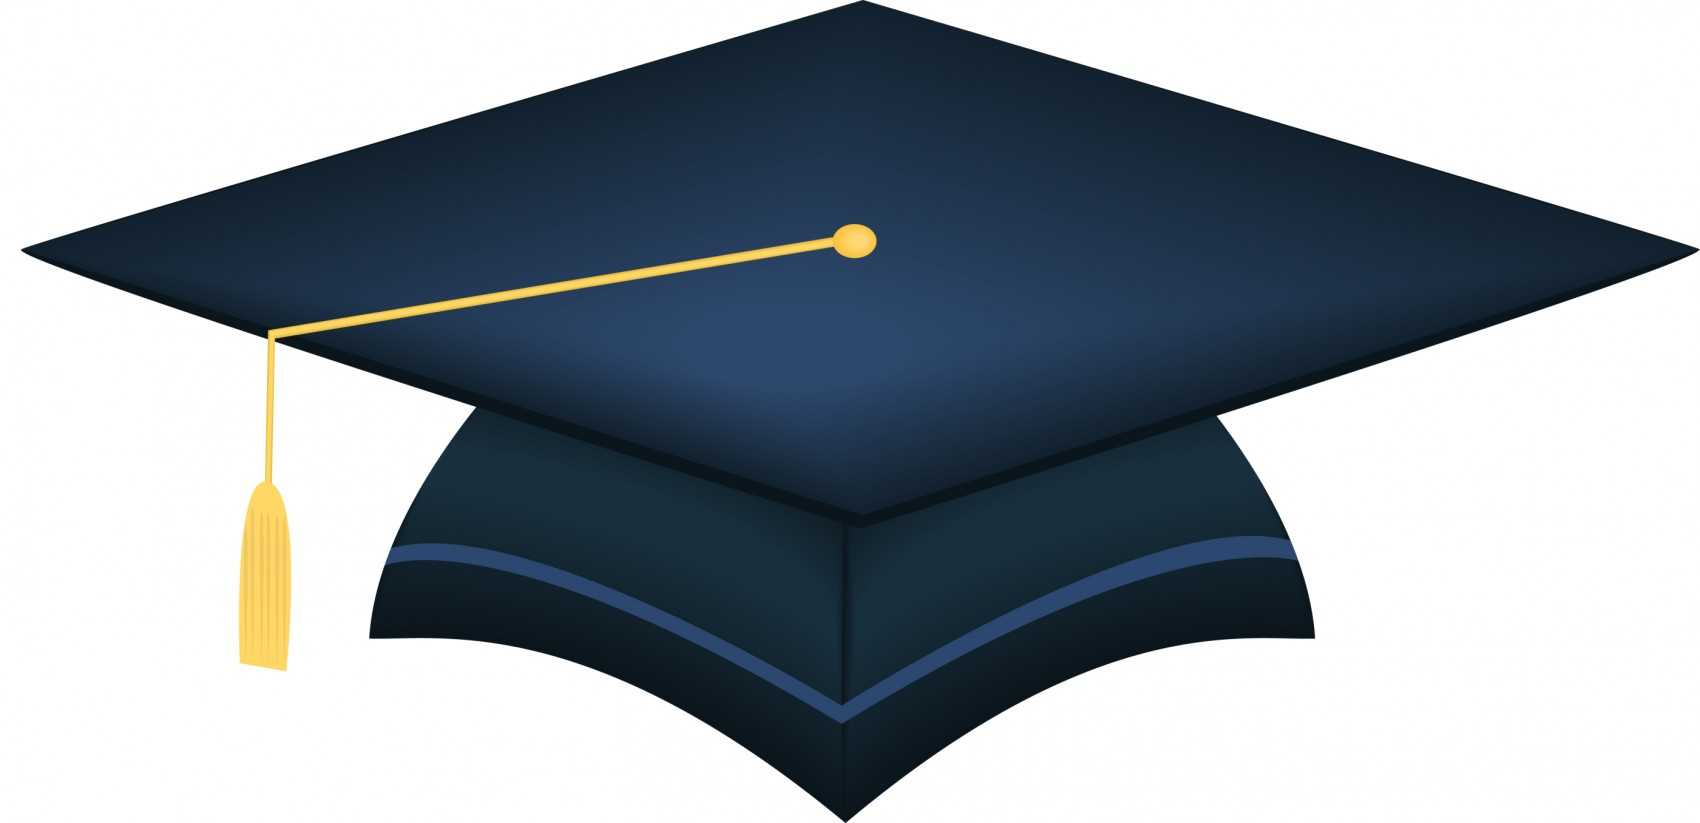 Clipart of a graduation hat svg library stock Graduation Hat Image | Free download best Graduation Hat Image on ... svg library stock